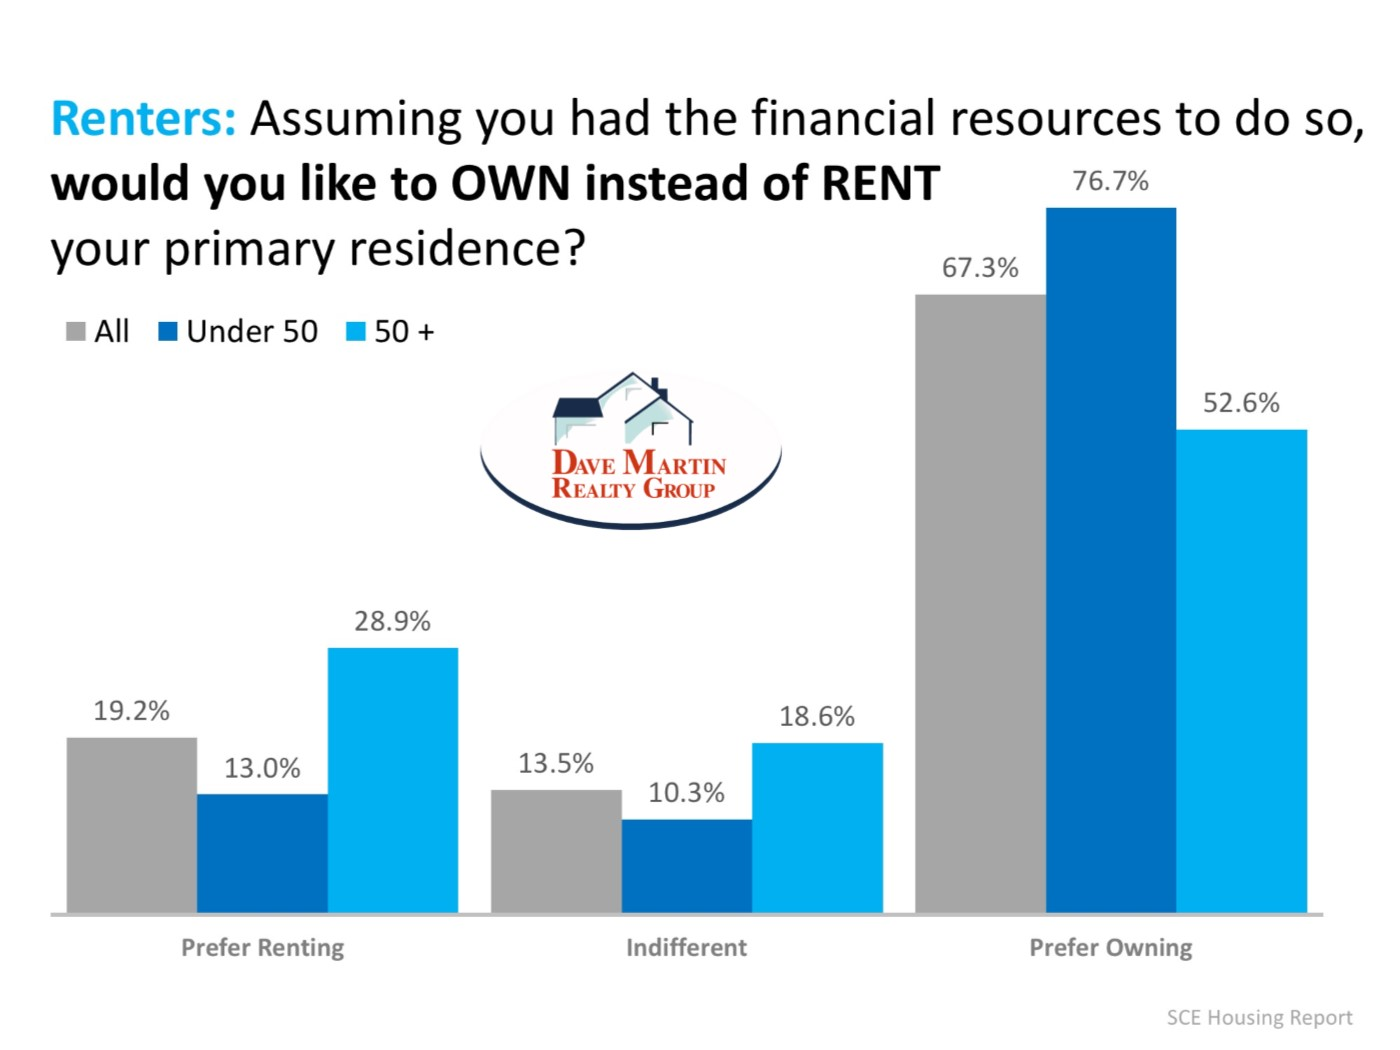 Millennial's and others prefer to own their own home rather than rent survey indicates this is strongest among those under 50 years of age Home buying